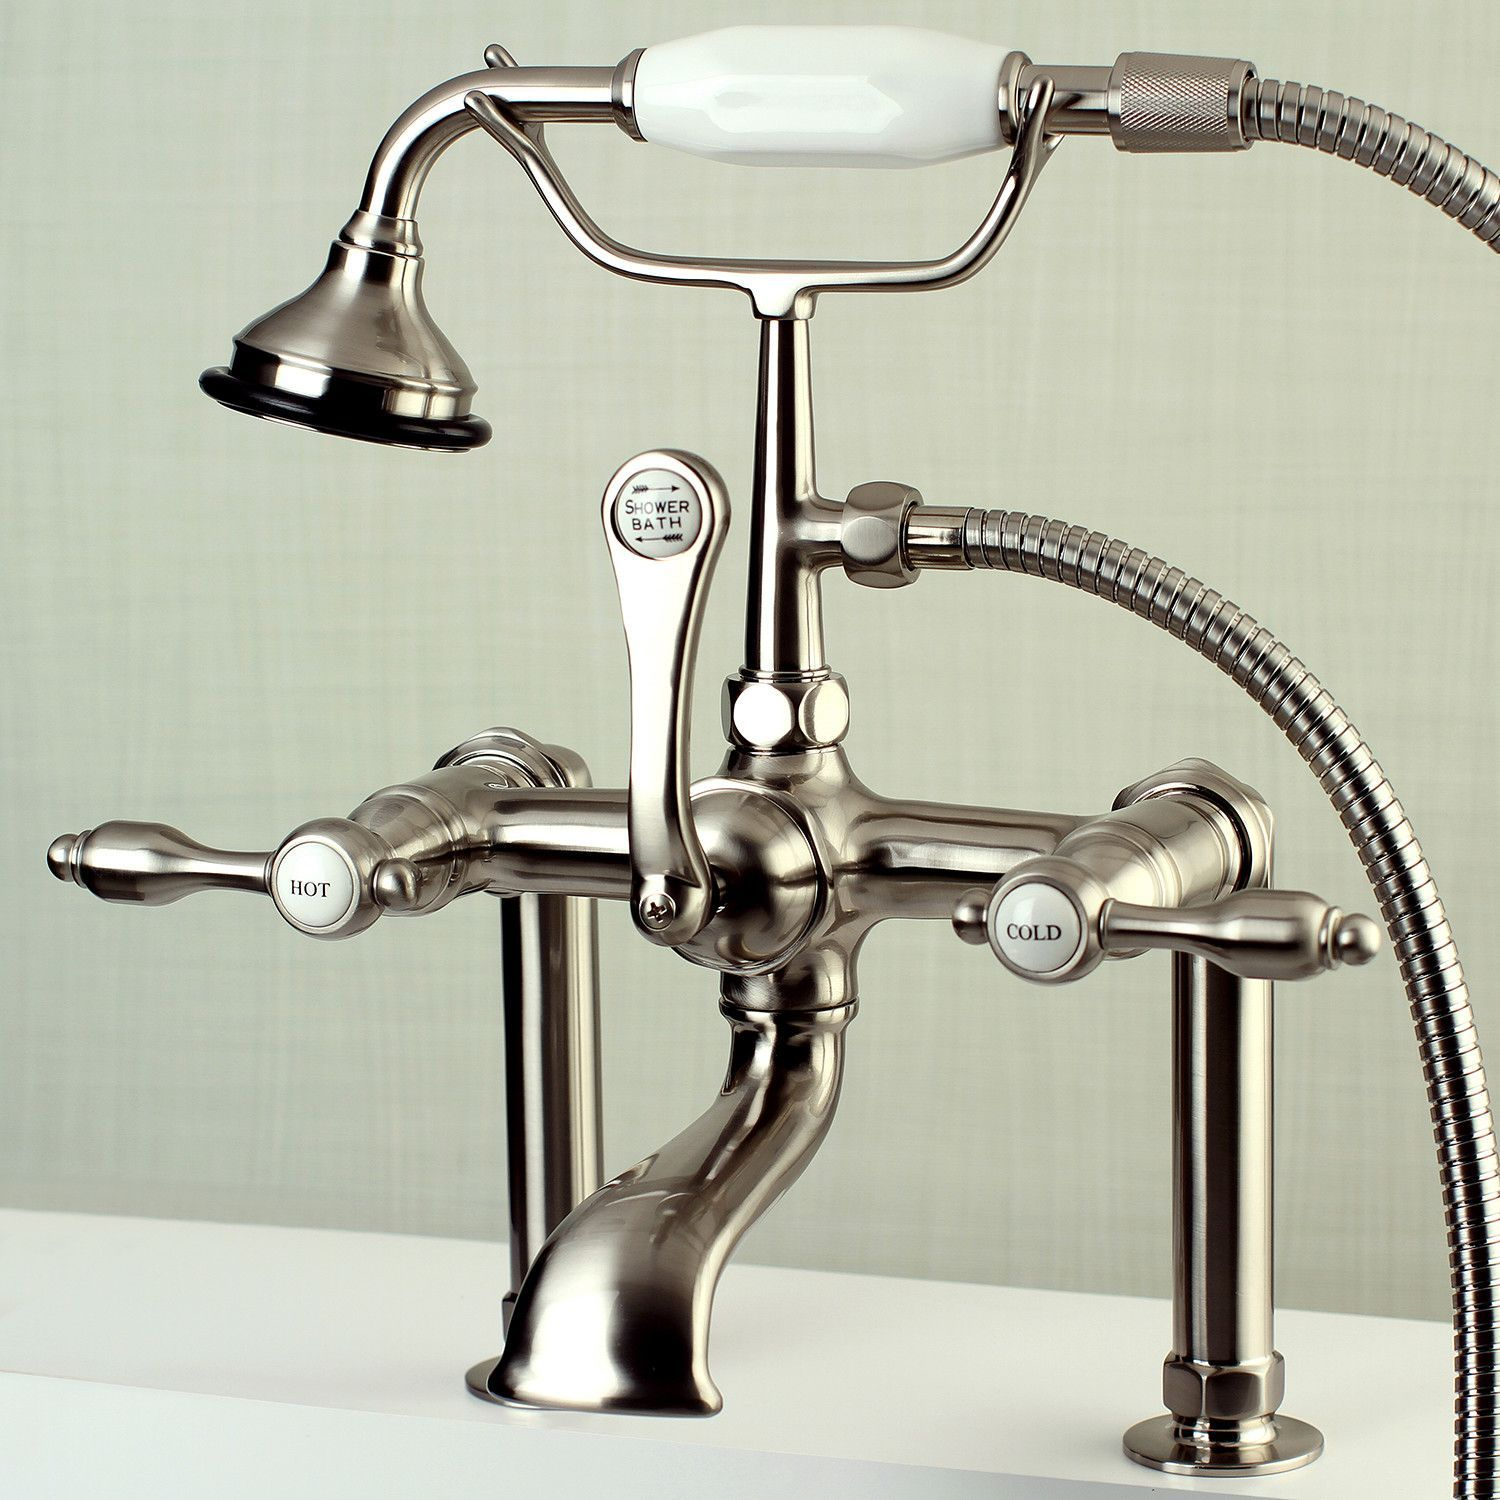 Tudor Triple Handle Deck Mounted Clawfoot Tub Faucet Trim With Diverter And Handshower Clawfoot Tub Faucet Clawfoot Tub Tub Faucet